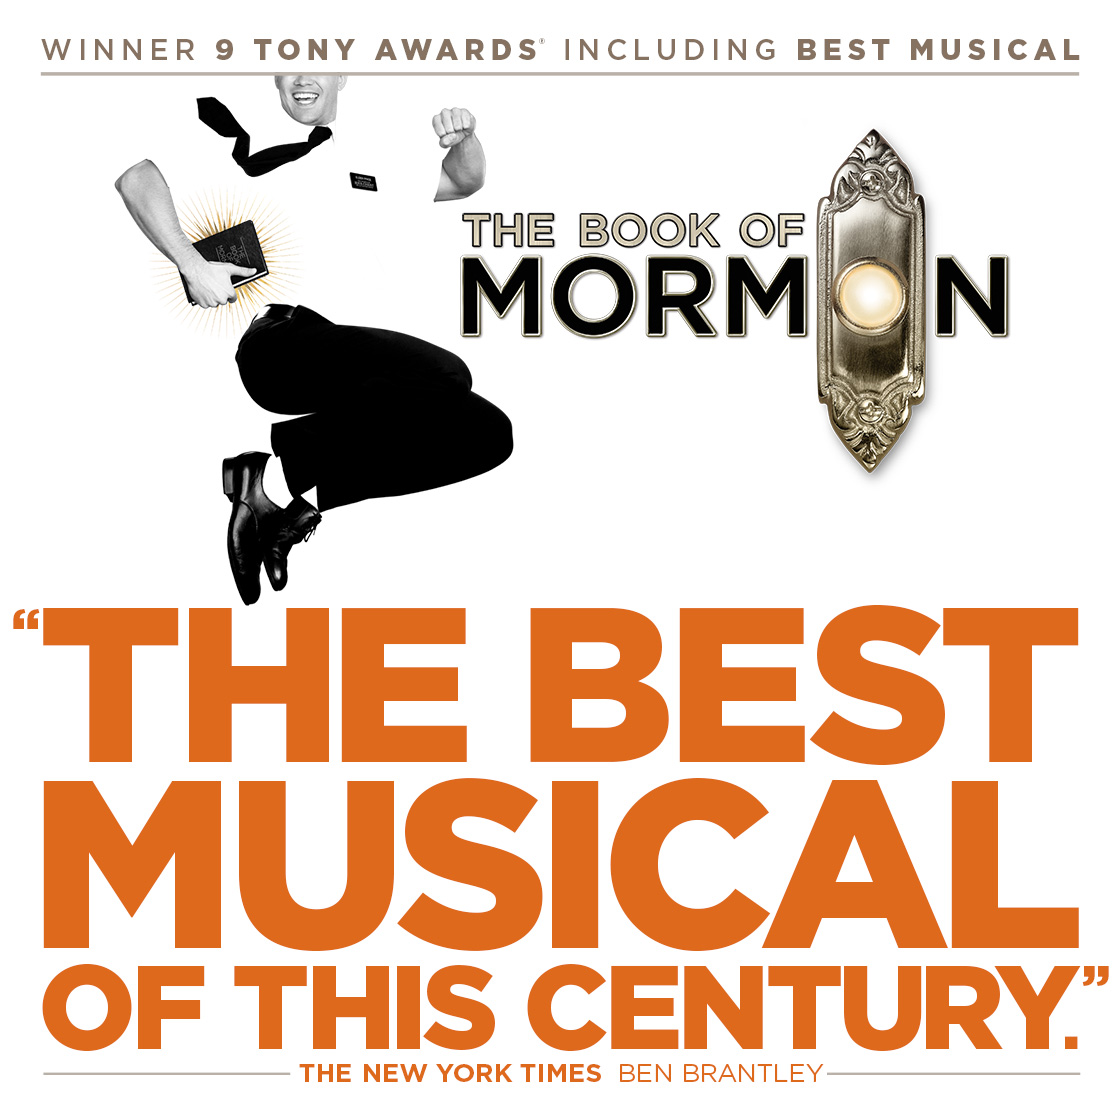 The book of mormon los angeles tour packages